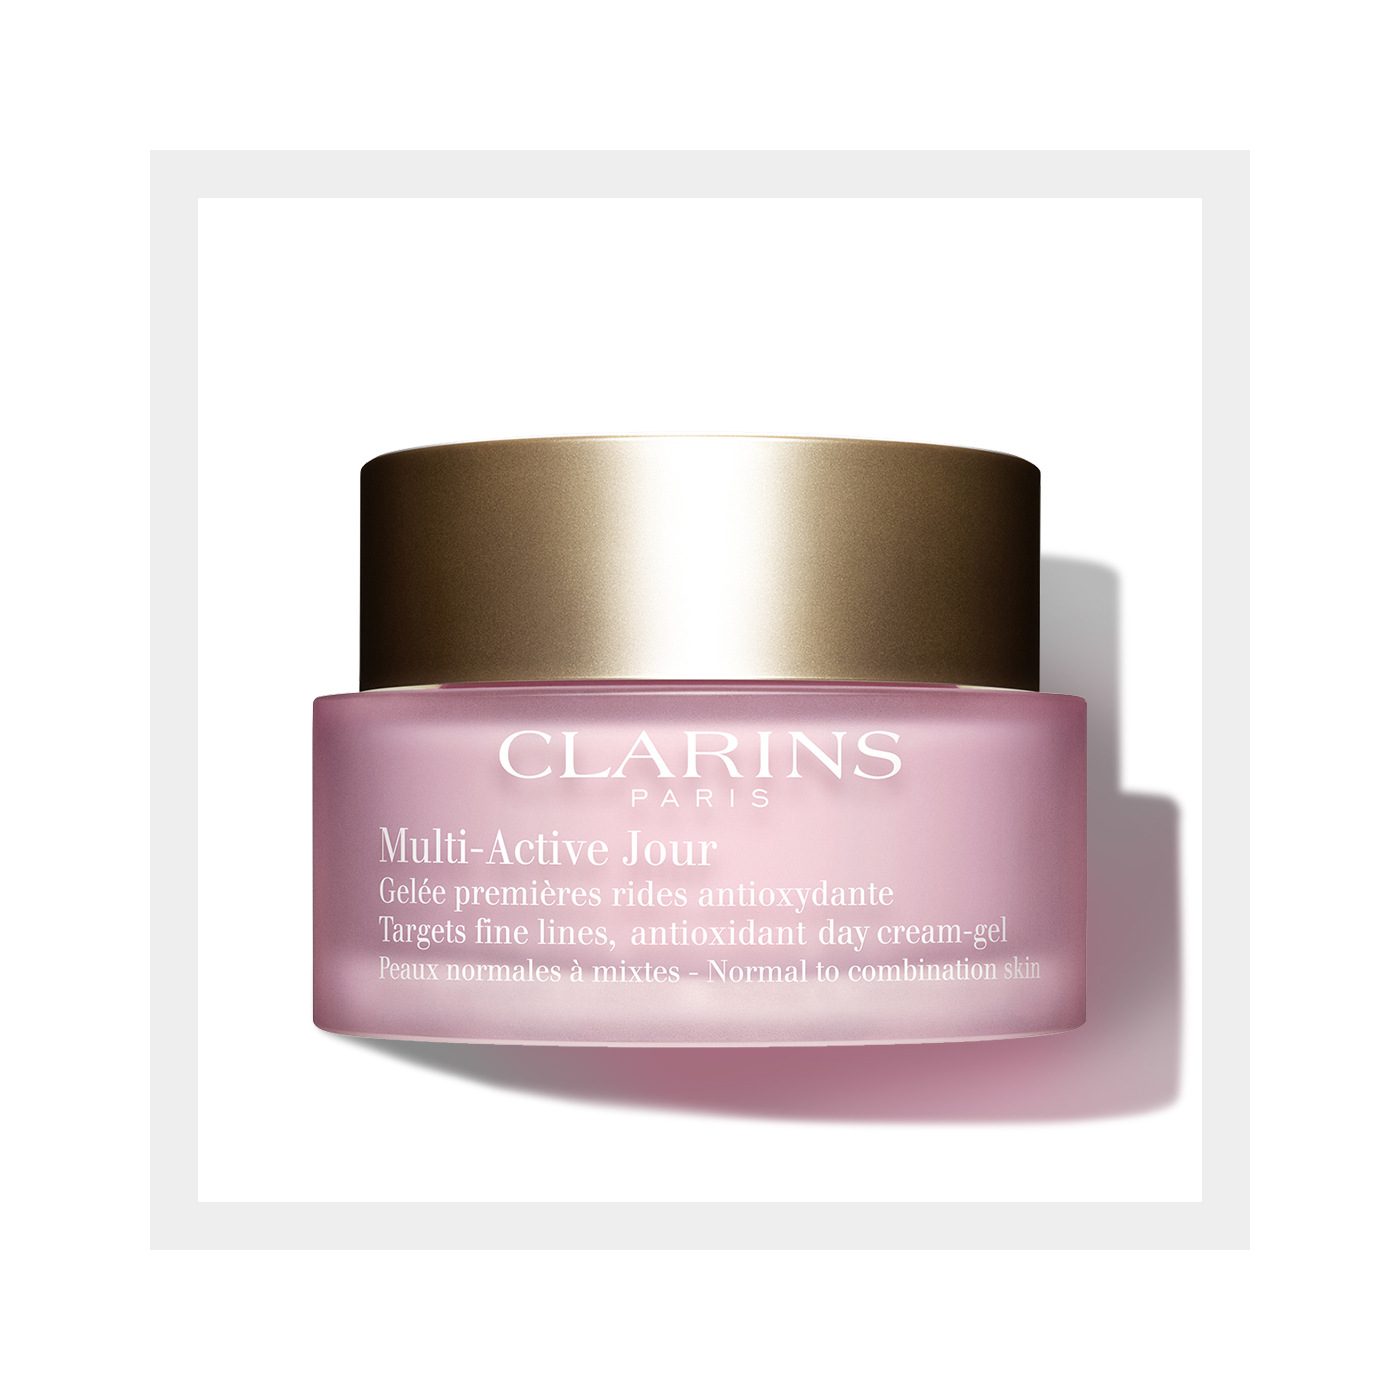 clarins products for combination skin